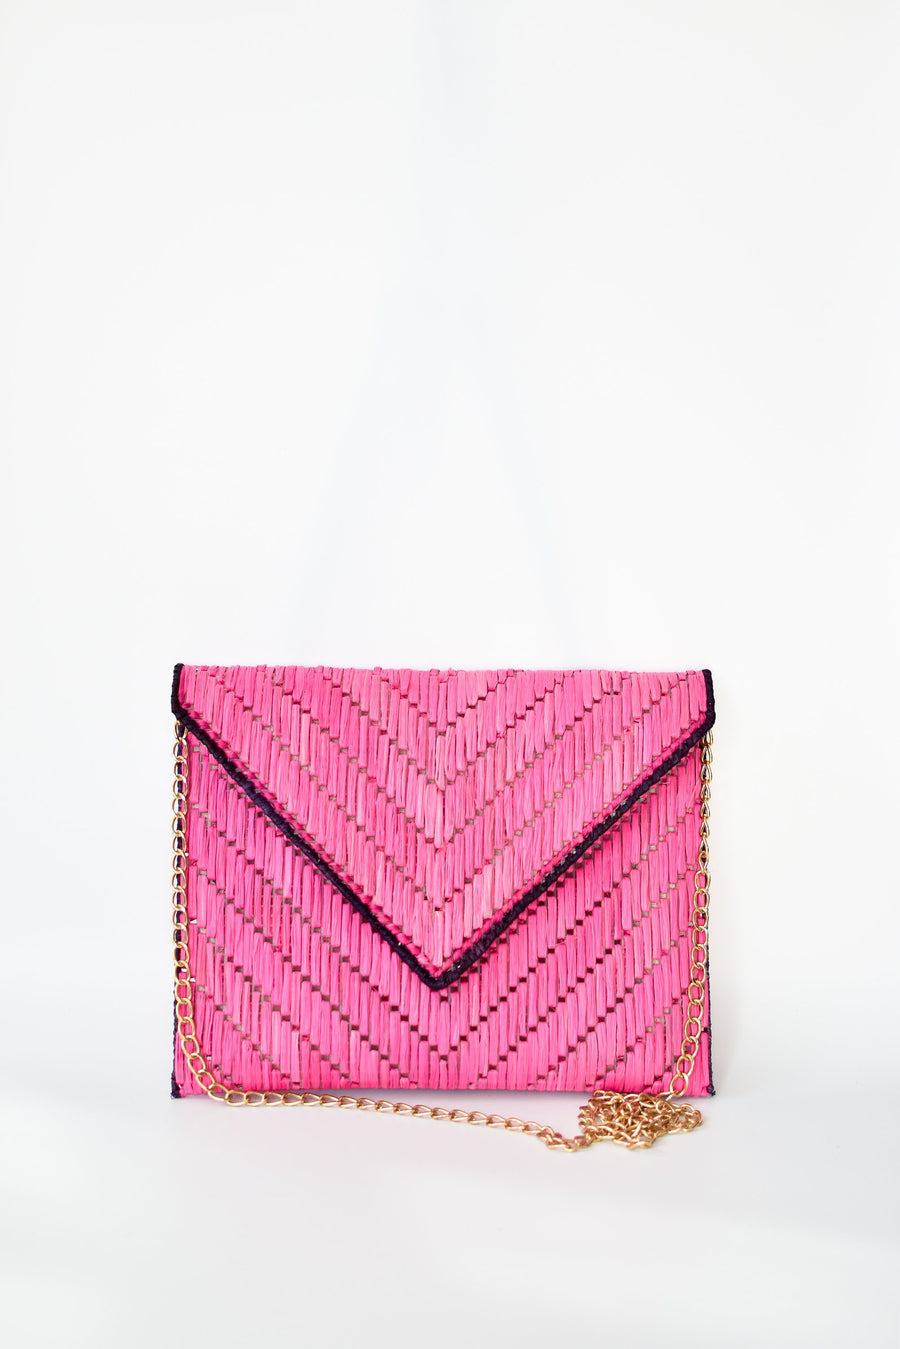 Bright pink woven raffia straw clutch with detachable gold chain strap.